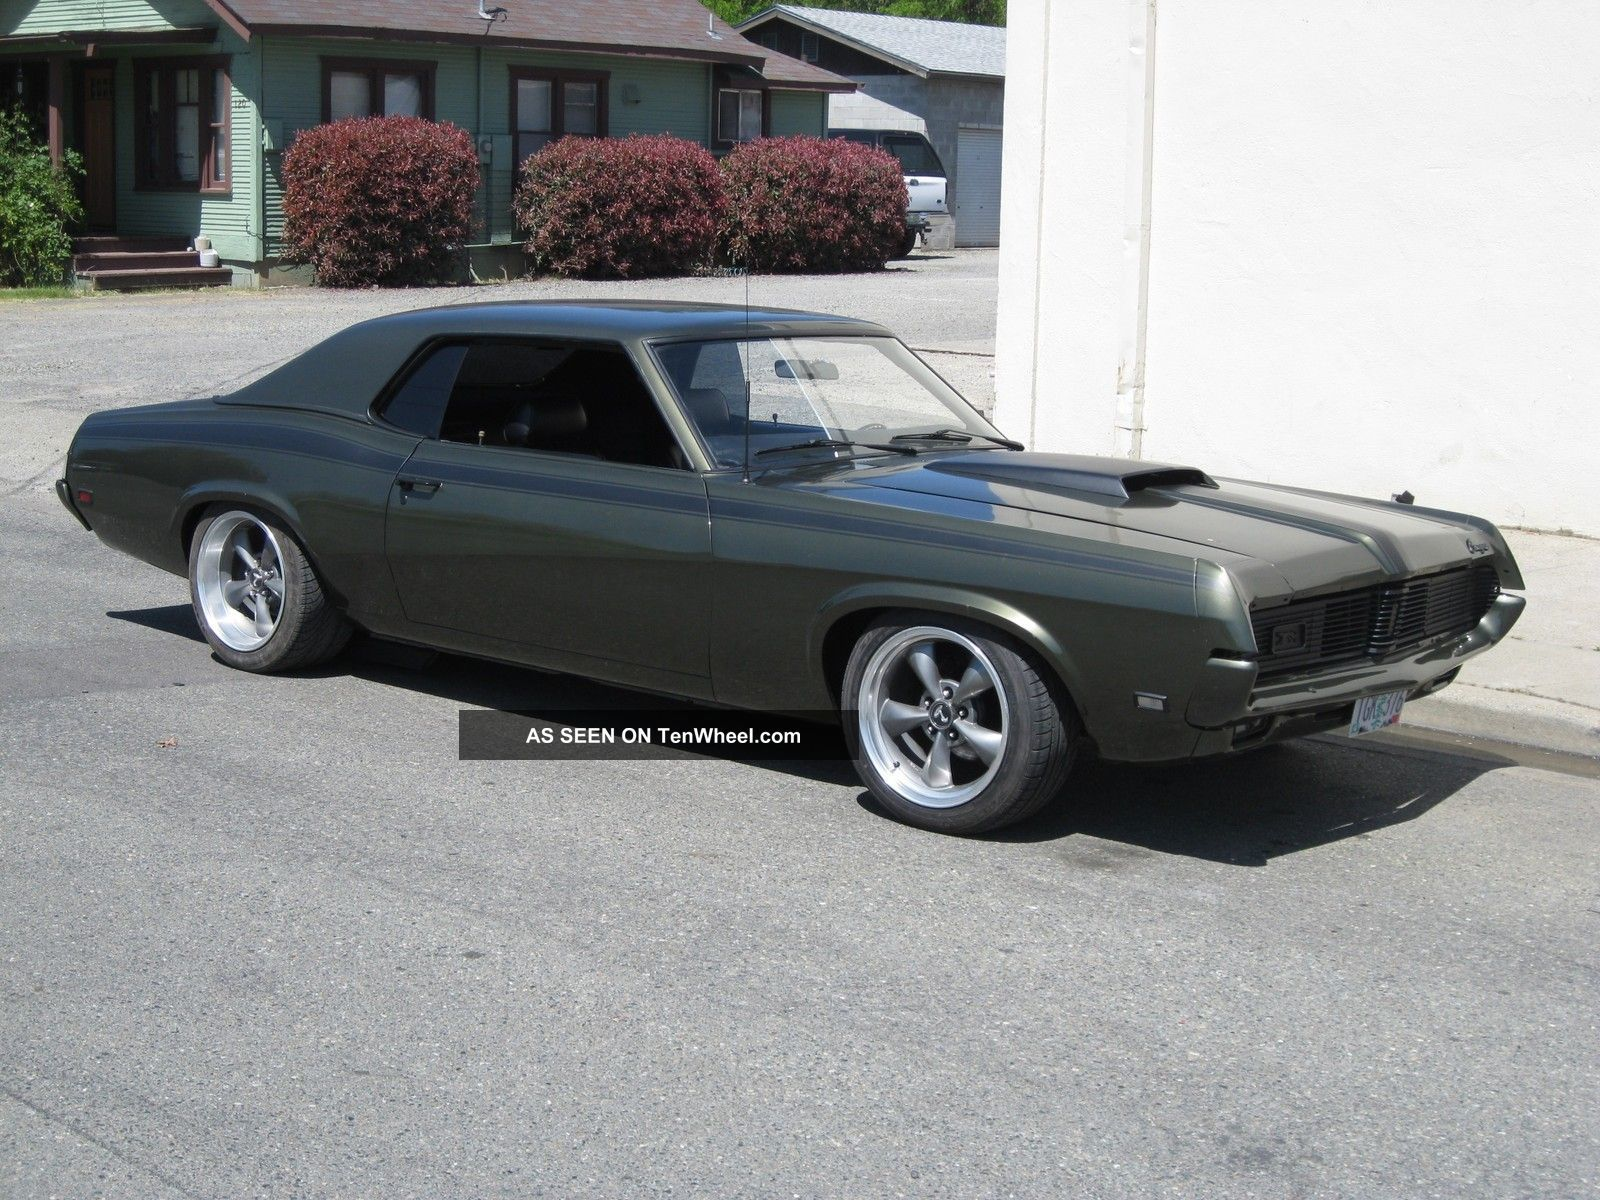 1969 Cougar 1967 1968 1970 Mustang Camero Hotrod Muscle